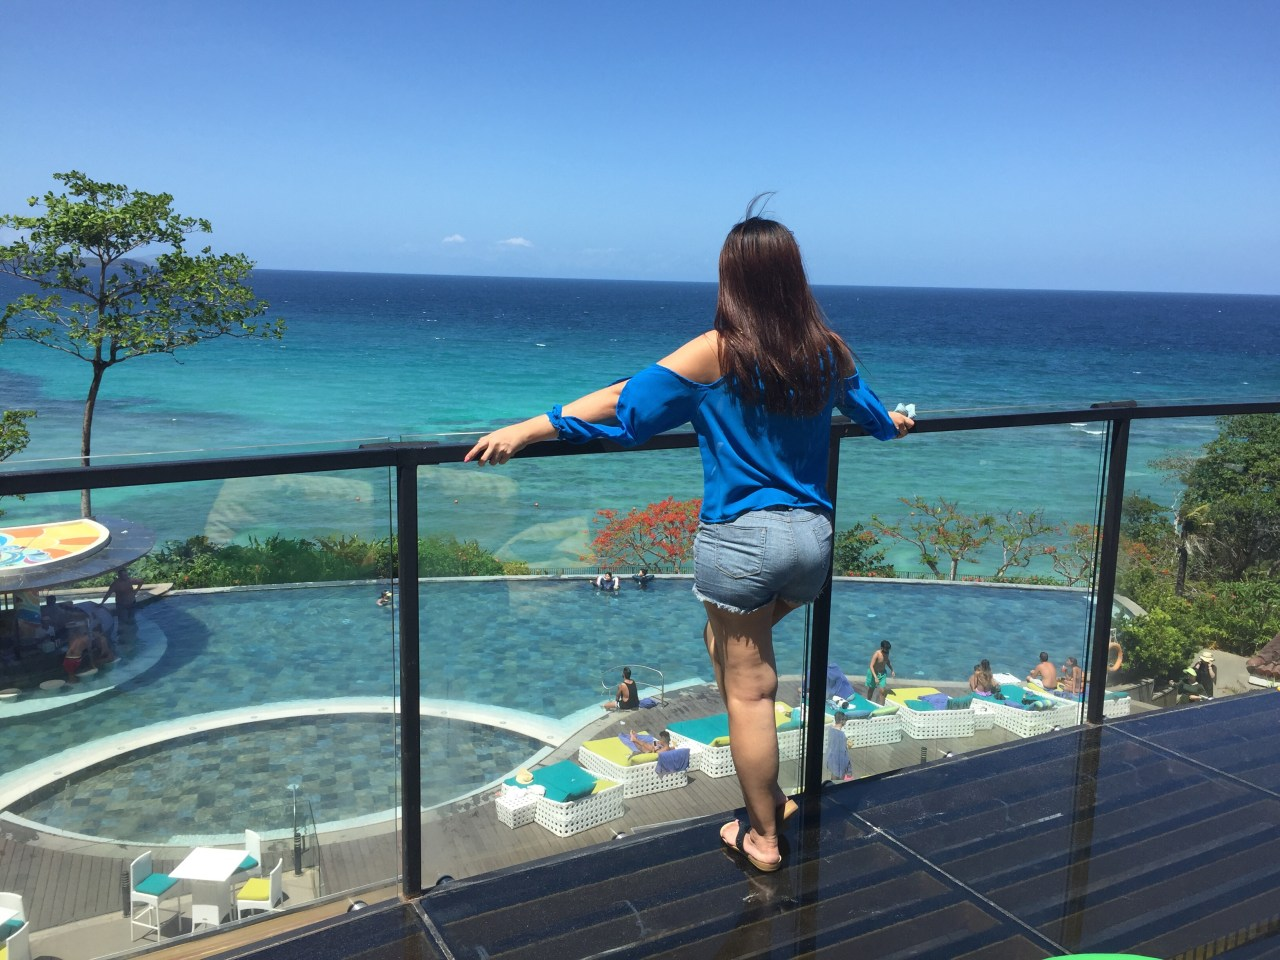 at the Ventana , Fairways & Bluewater Boracay